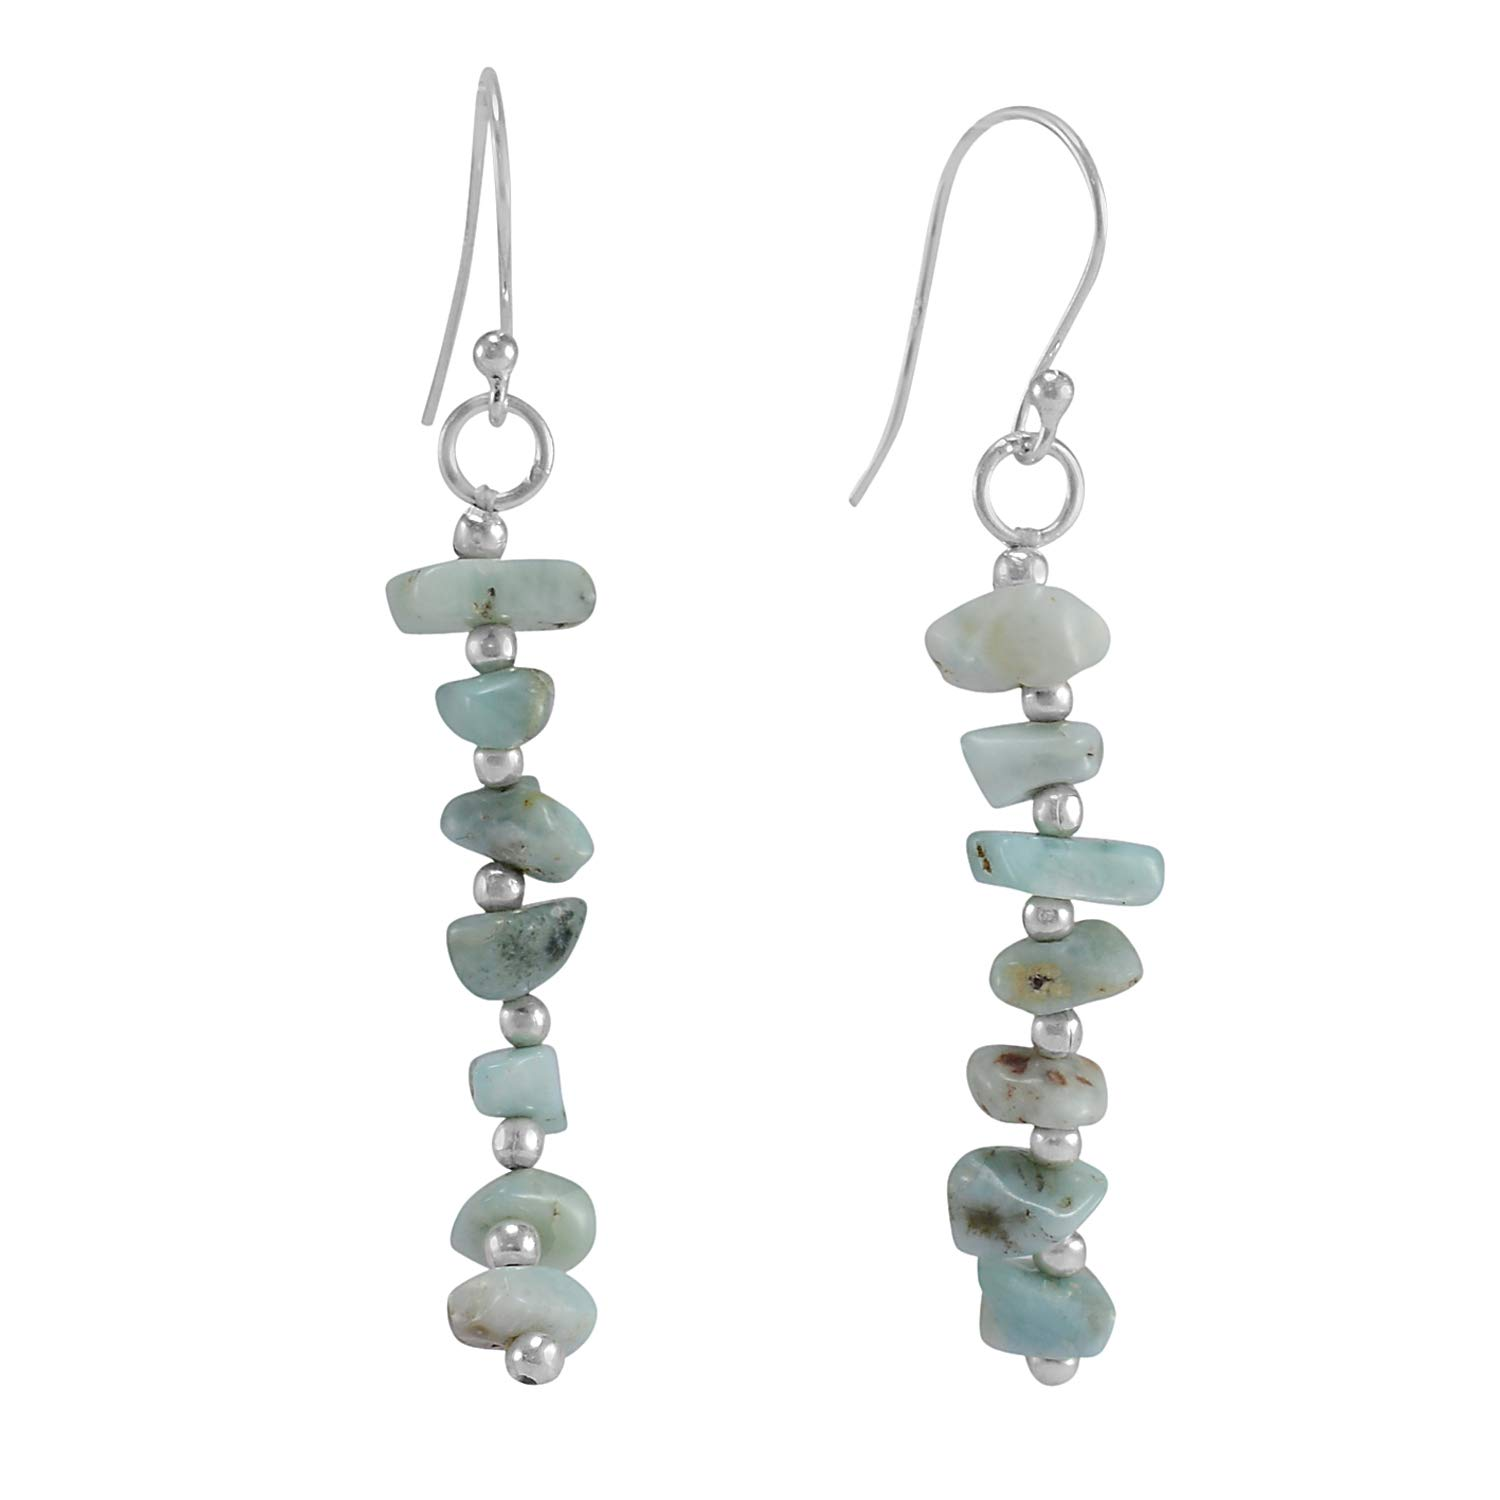 Saamarth Impex Larimar Gemstone 925 Sterling Silver Earring PG-156030